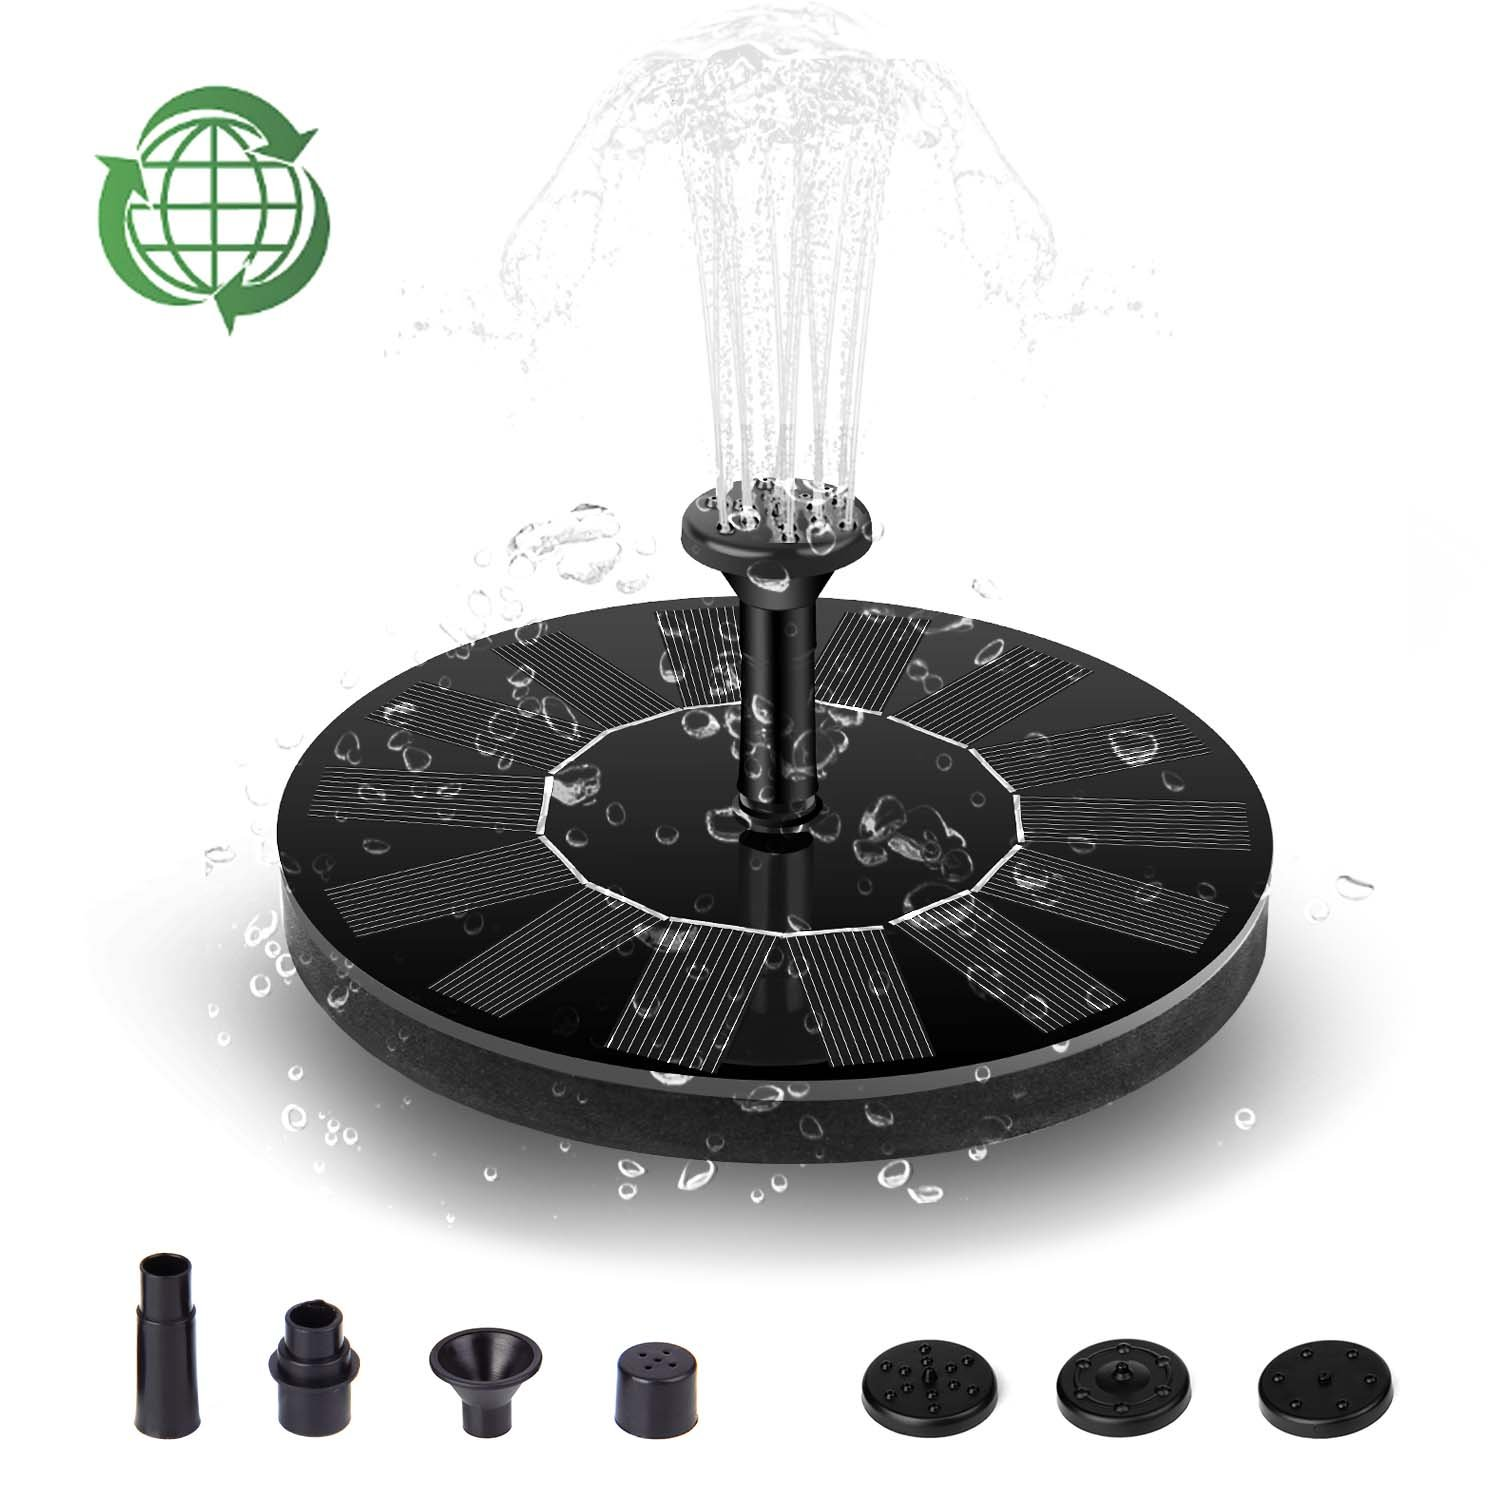 Usieka Upgraded Solar Fountain Pump, Solar Birdbath Fountain Pump 1.4W Free Standing Solar Powered fountain Pump Height Up to 39inches for Garden, Patio, Fish Tank Aquarium, Small Pond, Lawn